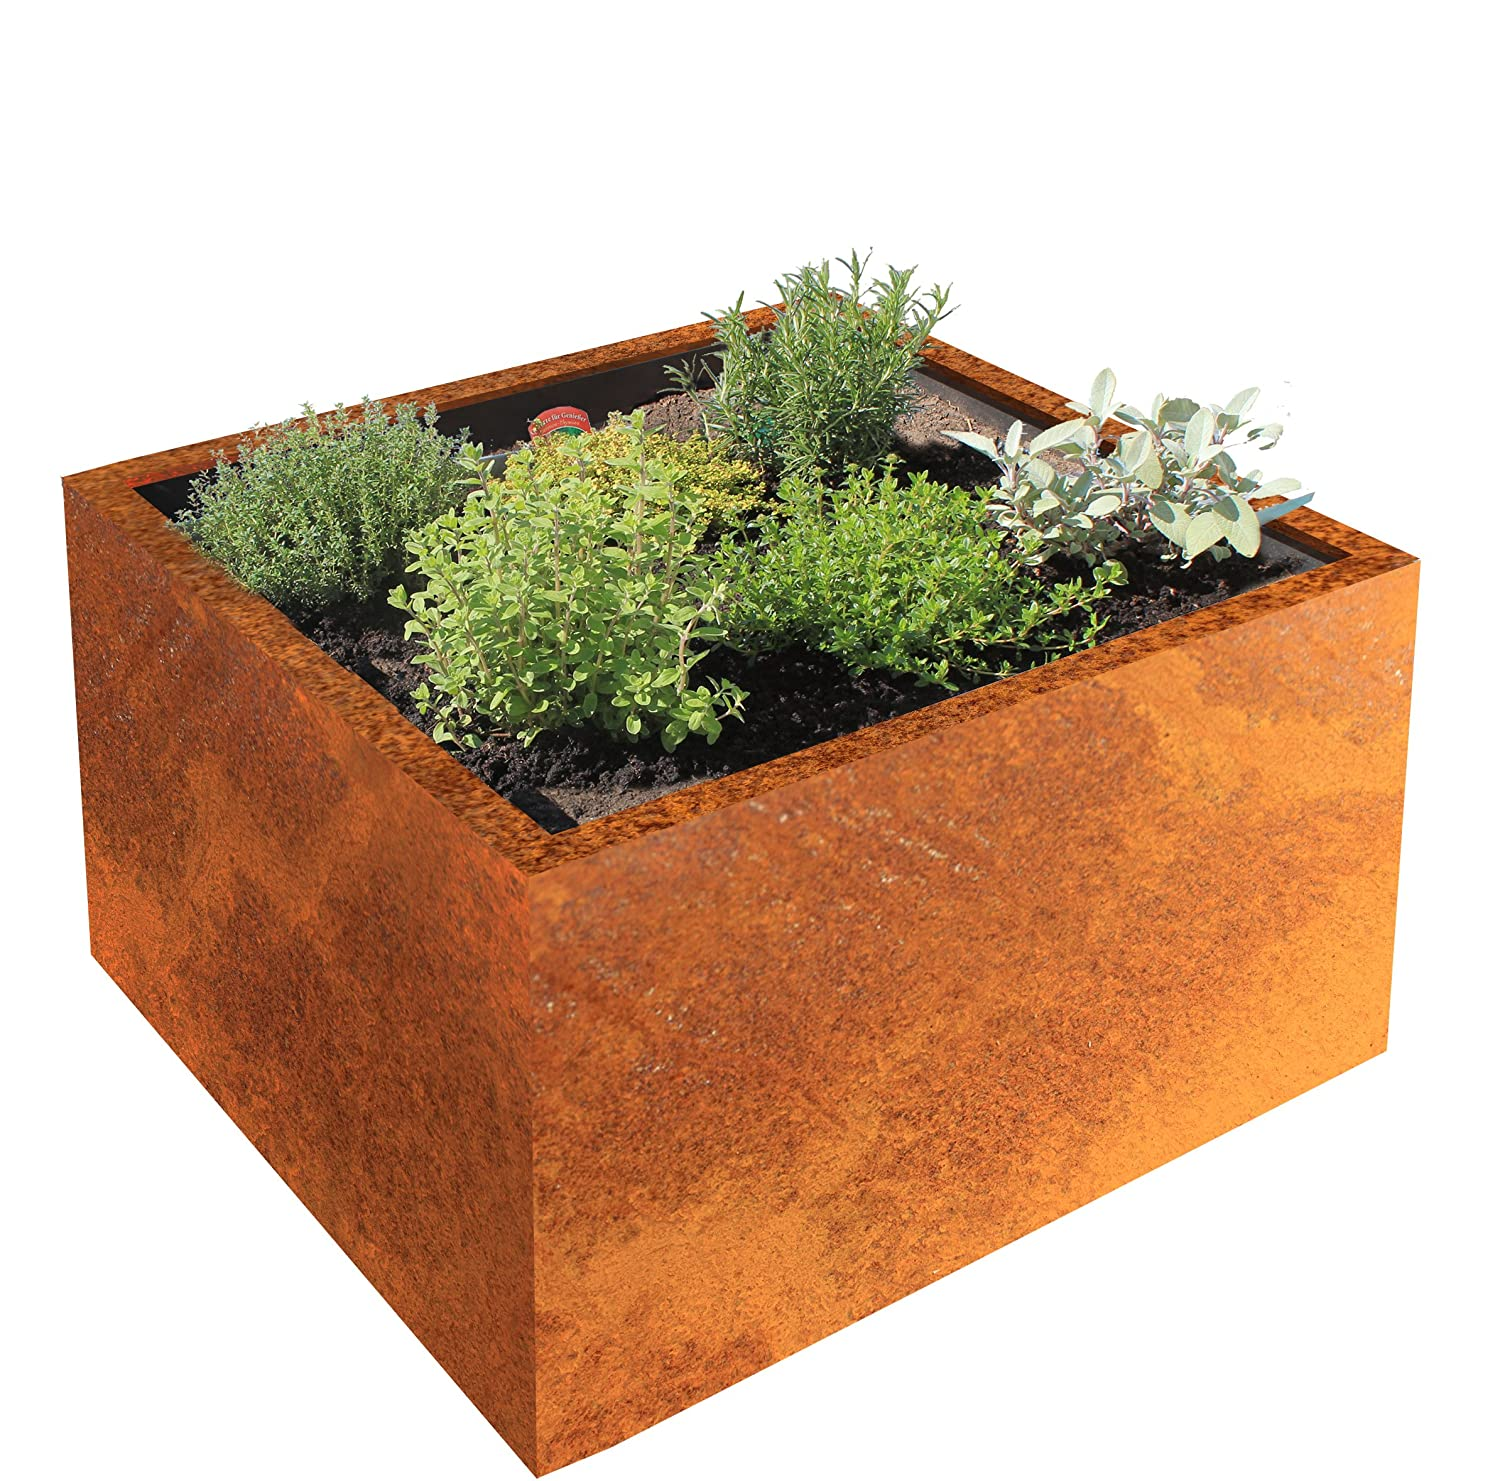 'Modular Raised Garden Bed/Planters Clara Corten Steel 80 x 80 cm, depth 50